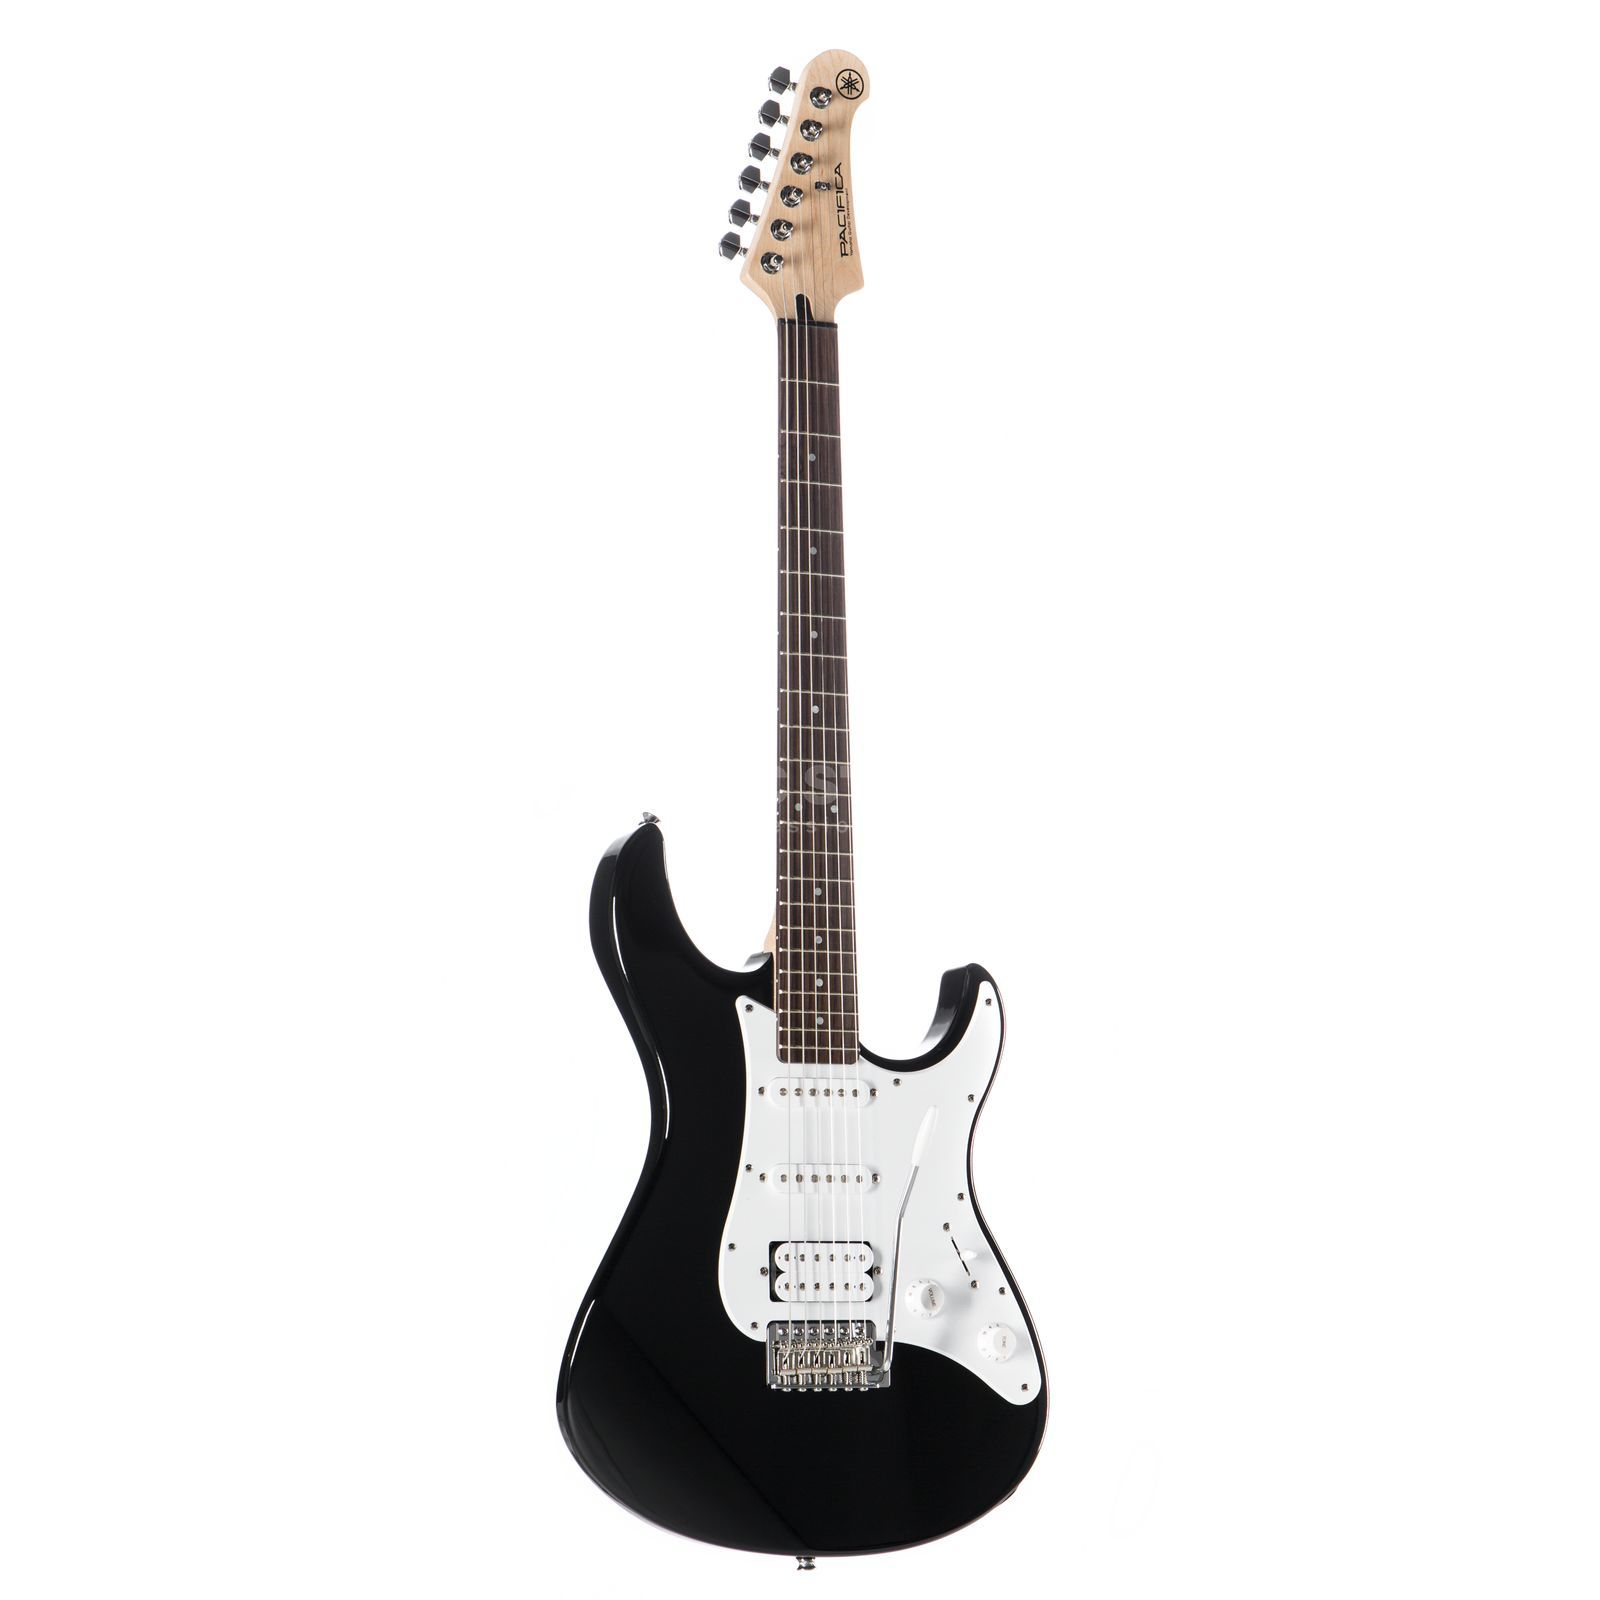 Yamaha Pacifica 112J Electric Guitar,  Black   Produktbillede